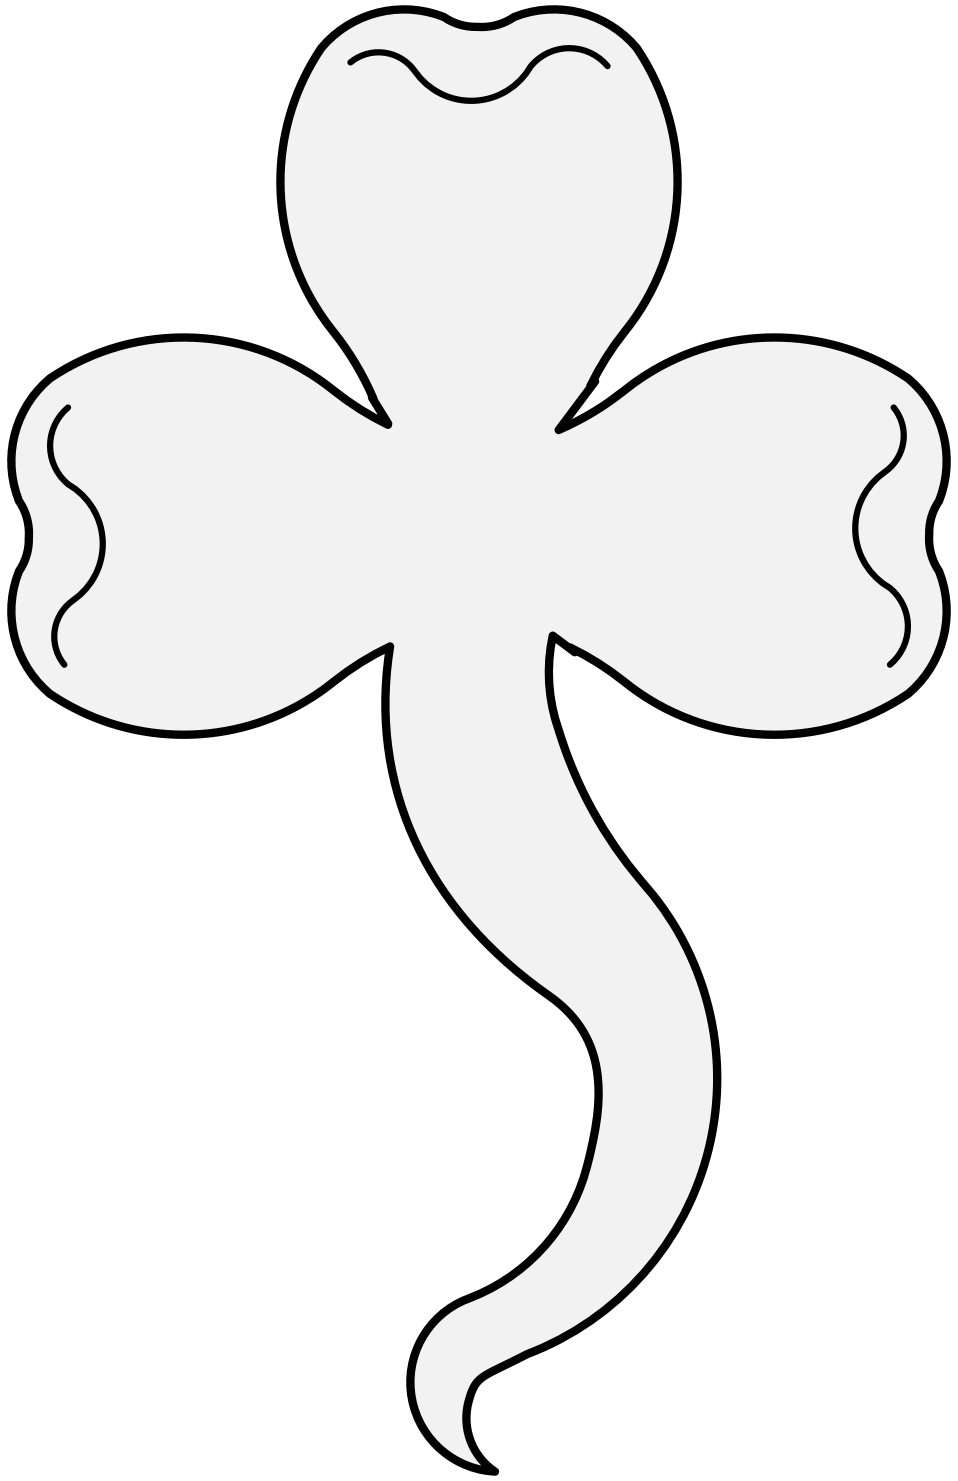 Shamrock heraldic art charge. Clover clipart traceable